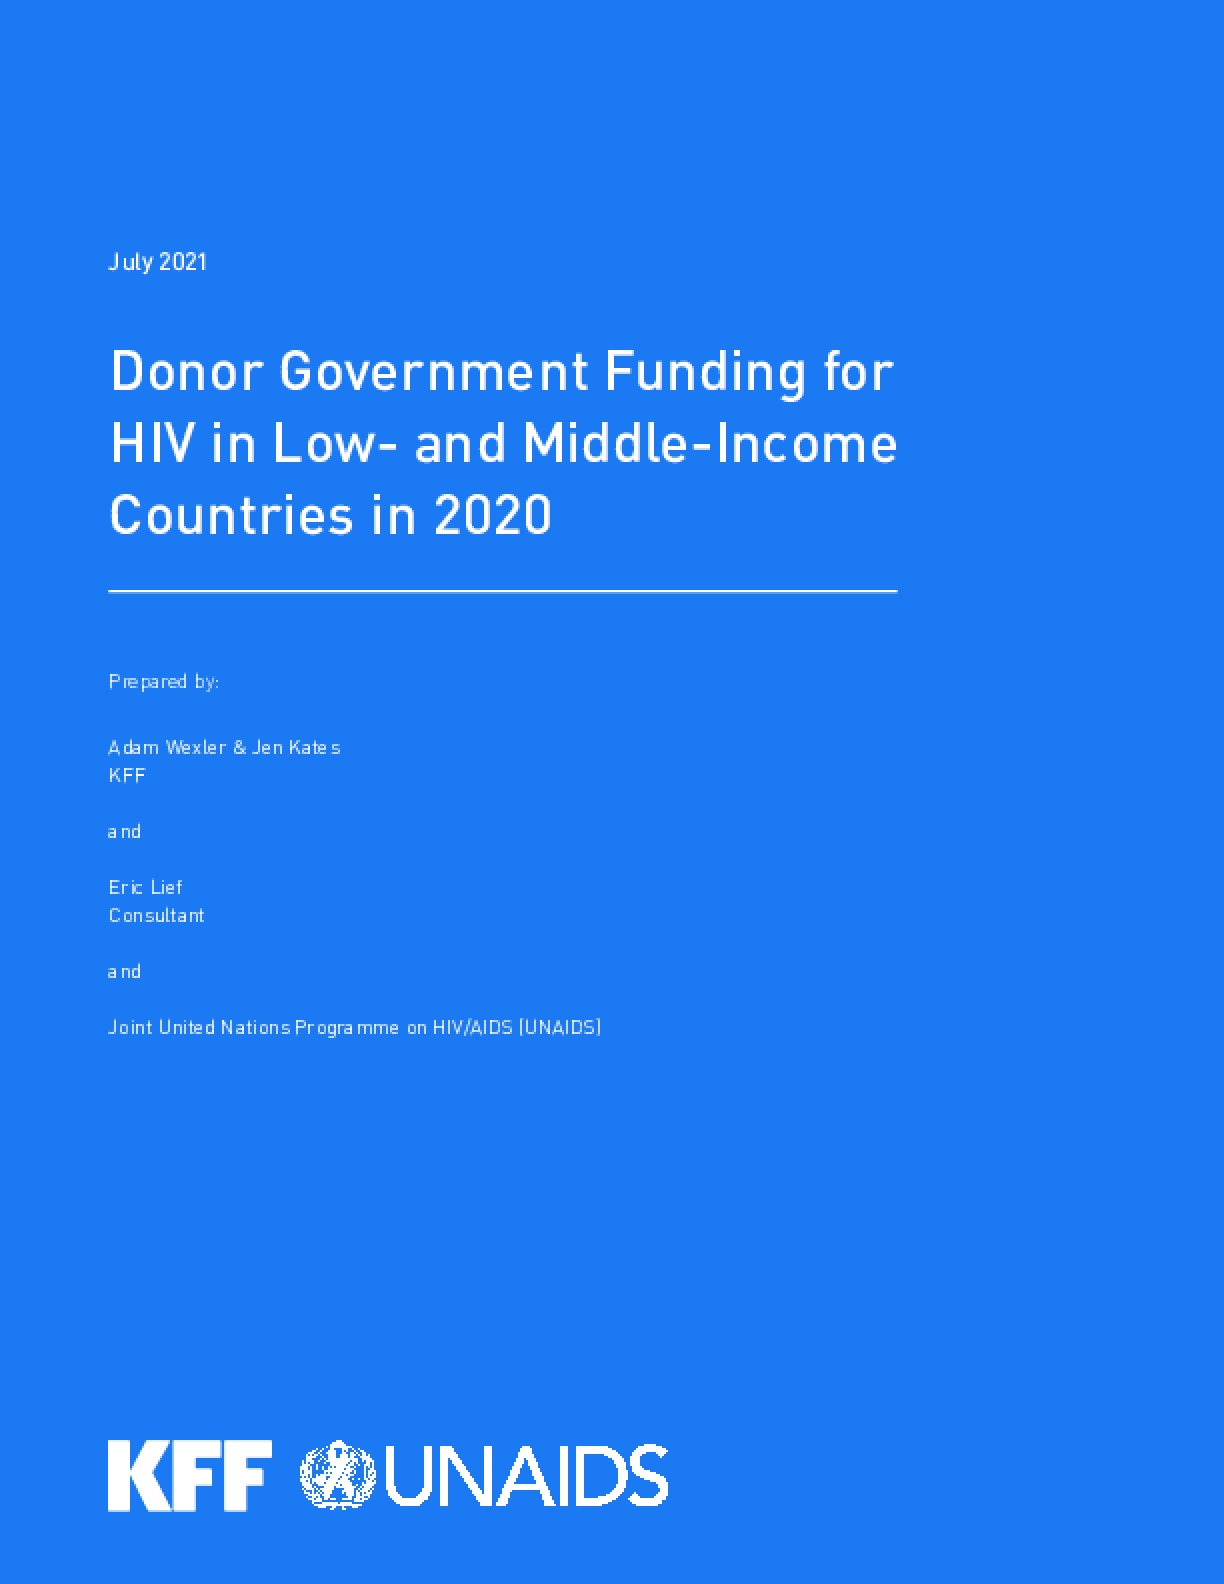 Donor Government Funding for HIV in Low- and Middle-Income Countries in 2020